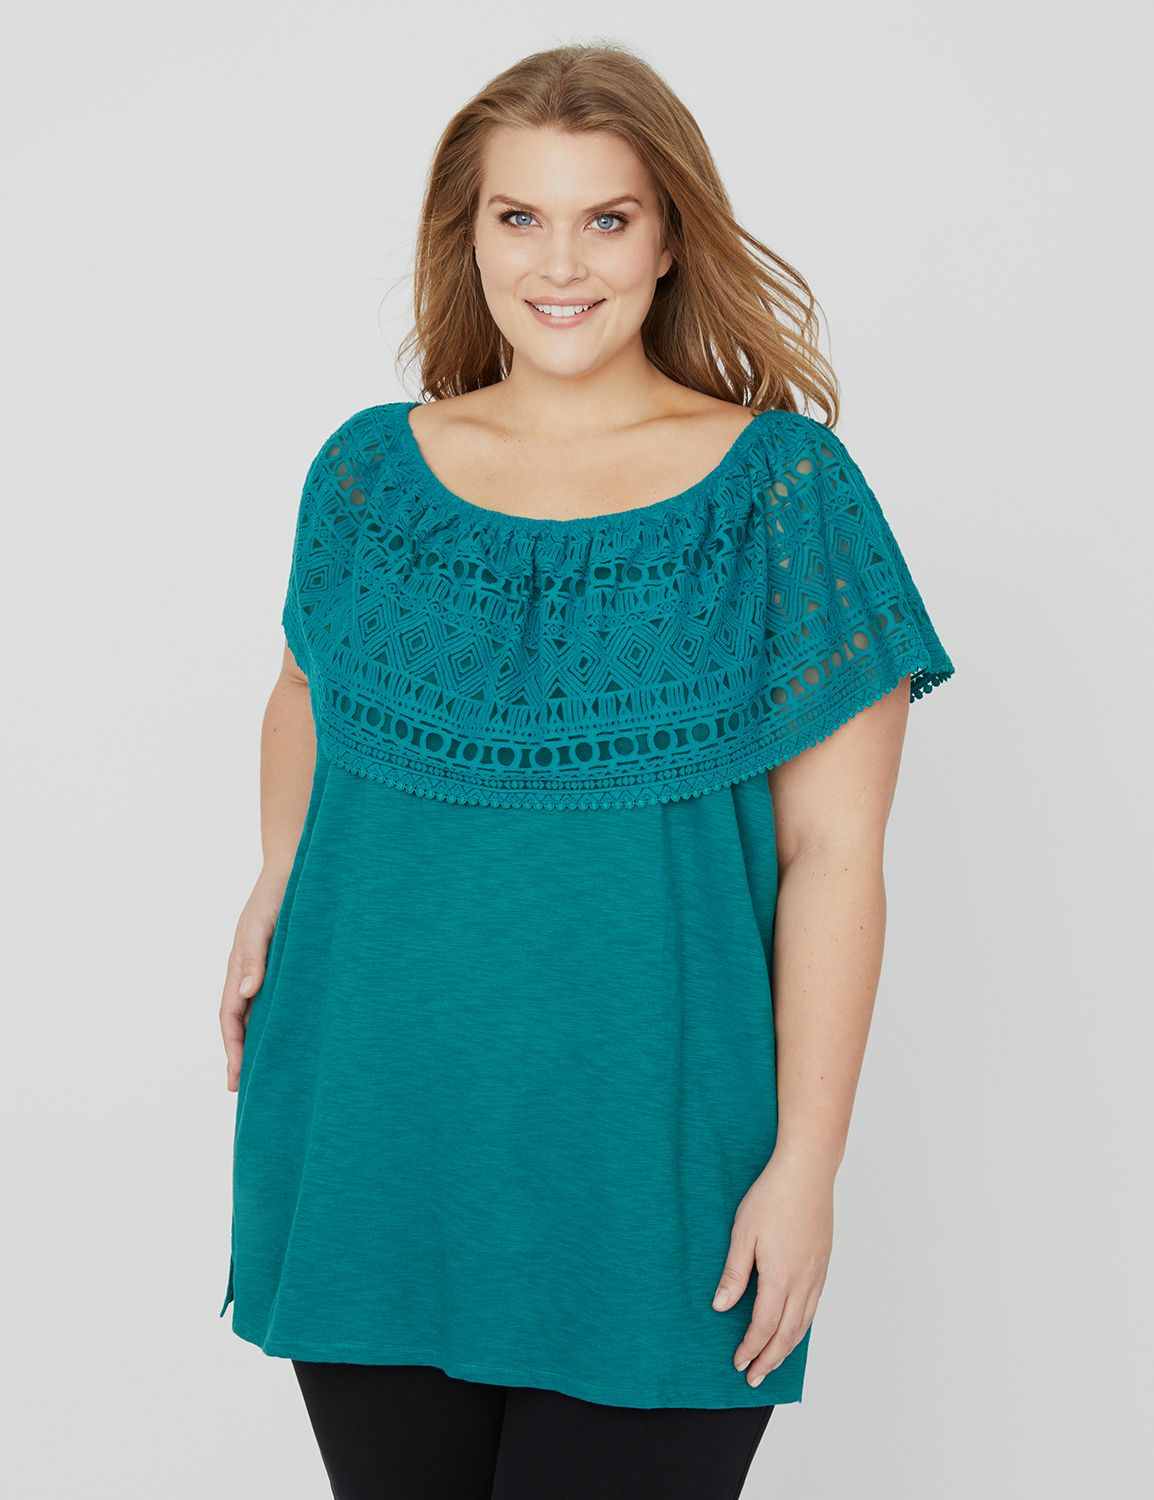 Shaded Cove Off-the-Shoulder Top 1088202 BURNOUT FLOUNCE OFF SHOULDE MP-300101839